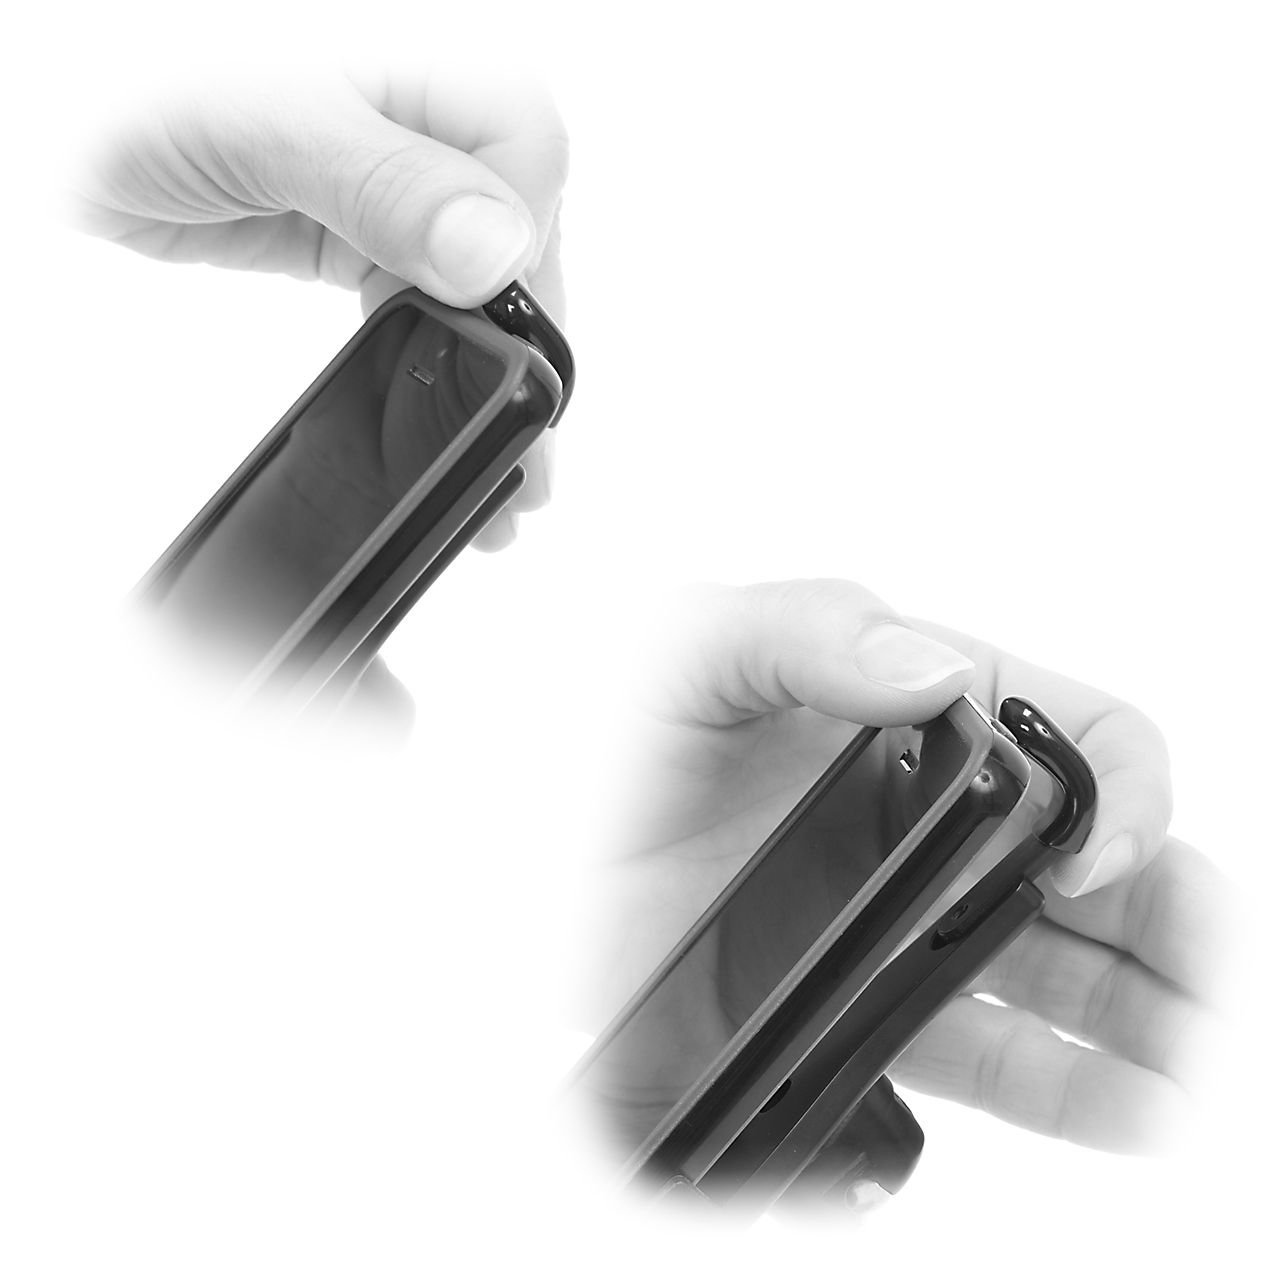 PED4-CH50 iPhone Tripod Mount (iPhone 5 shown for illustration purposes)